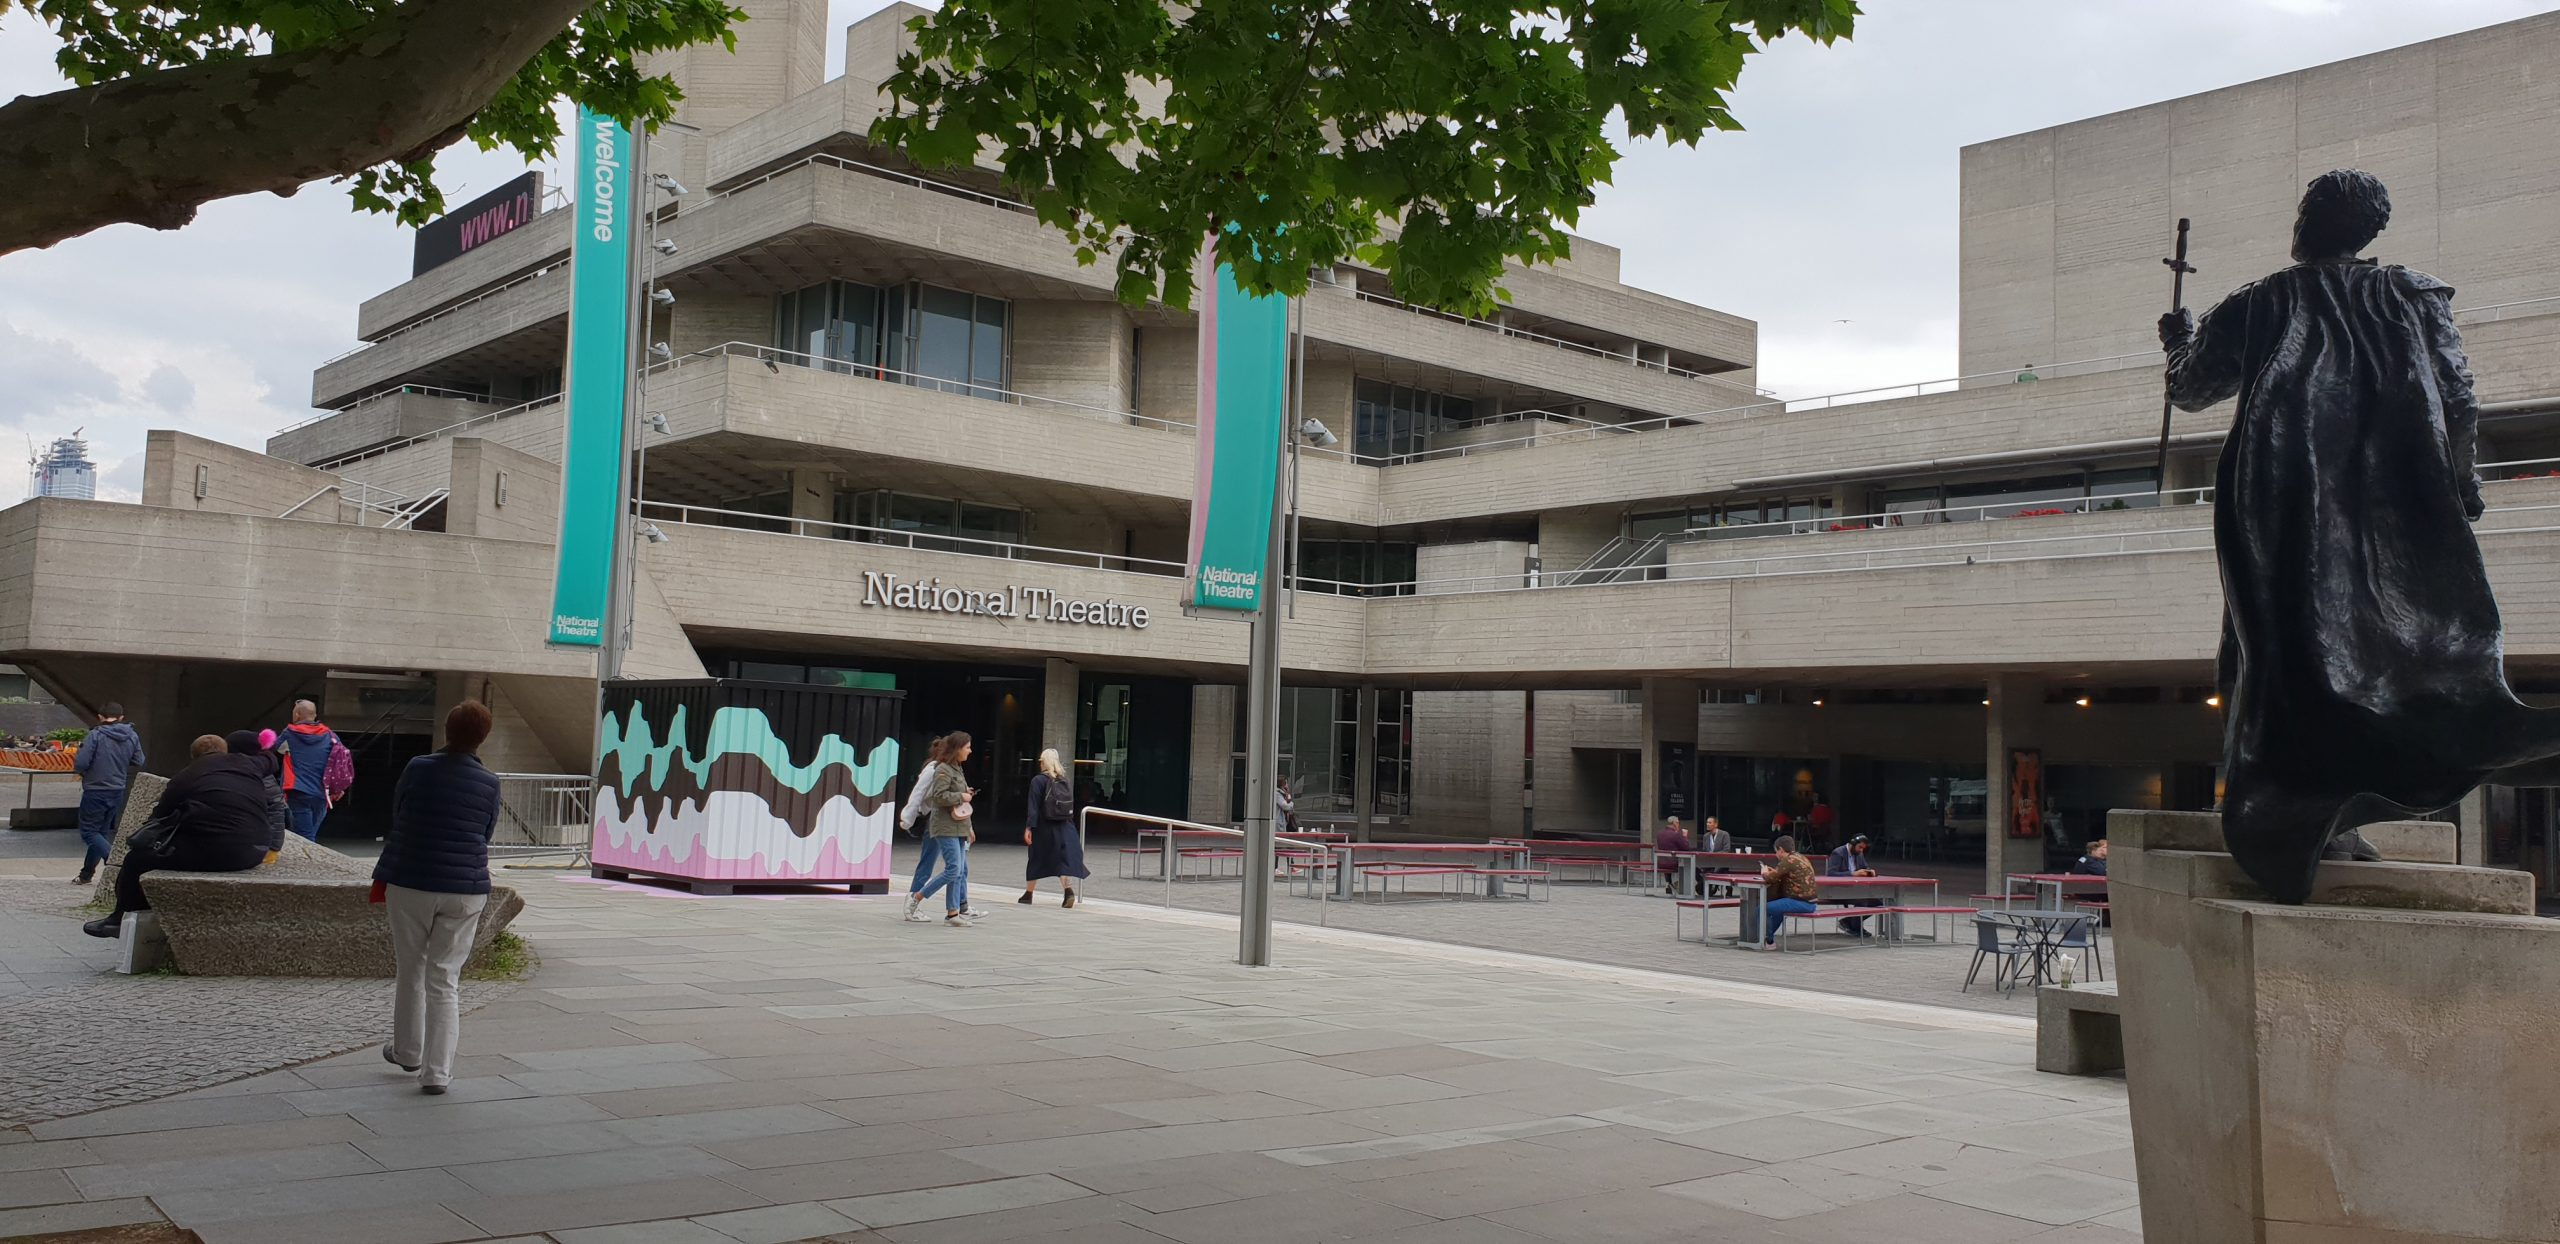 The National Theatre, Southbank, London